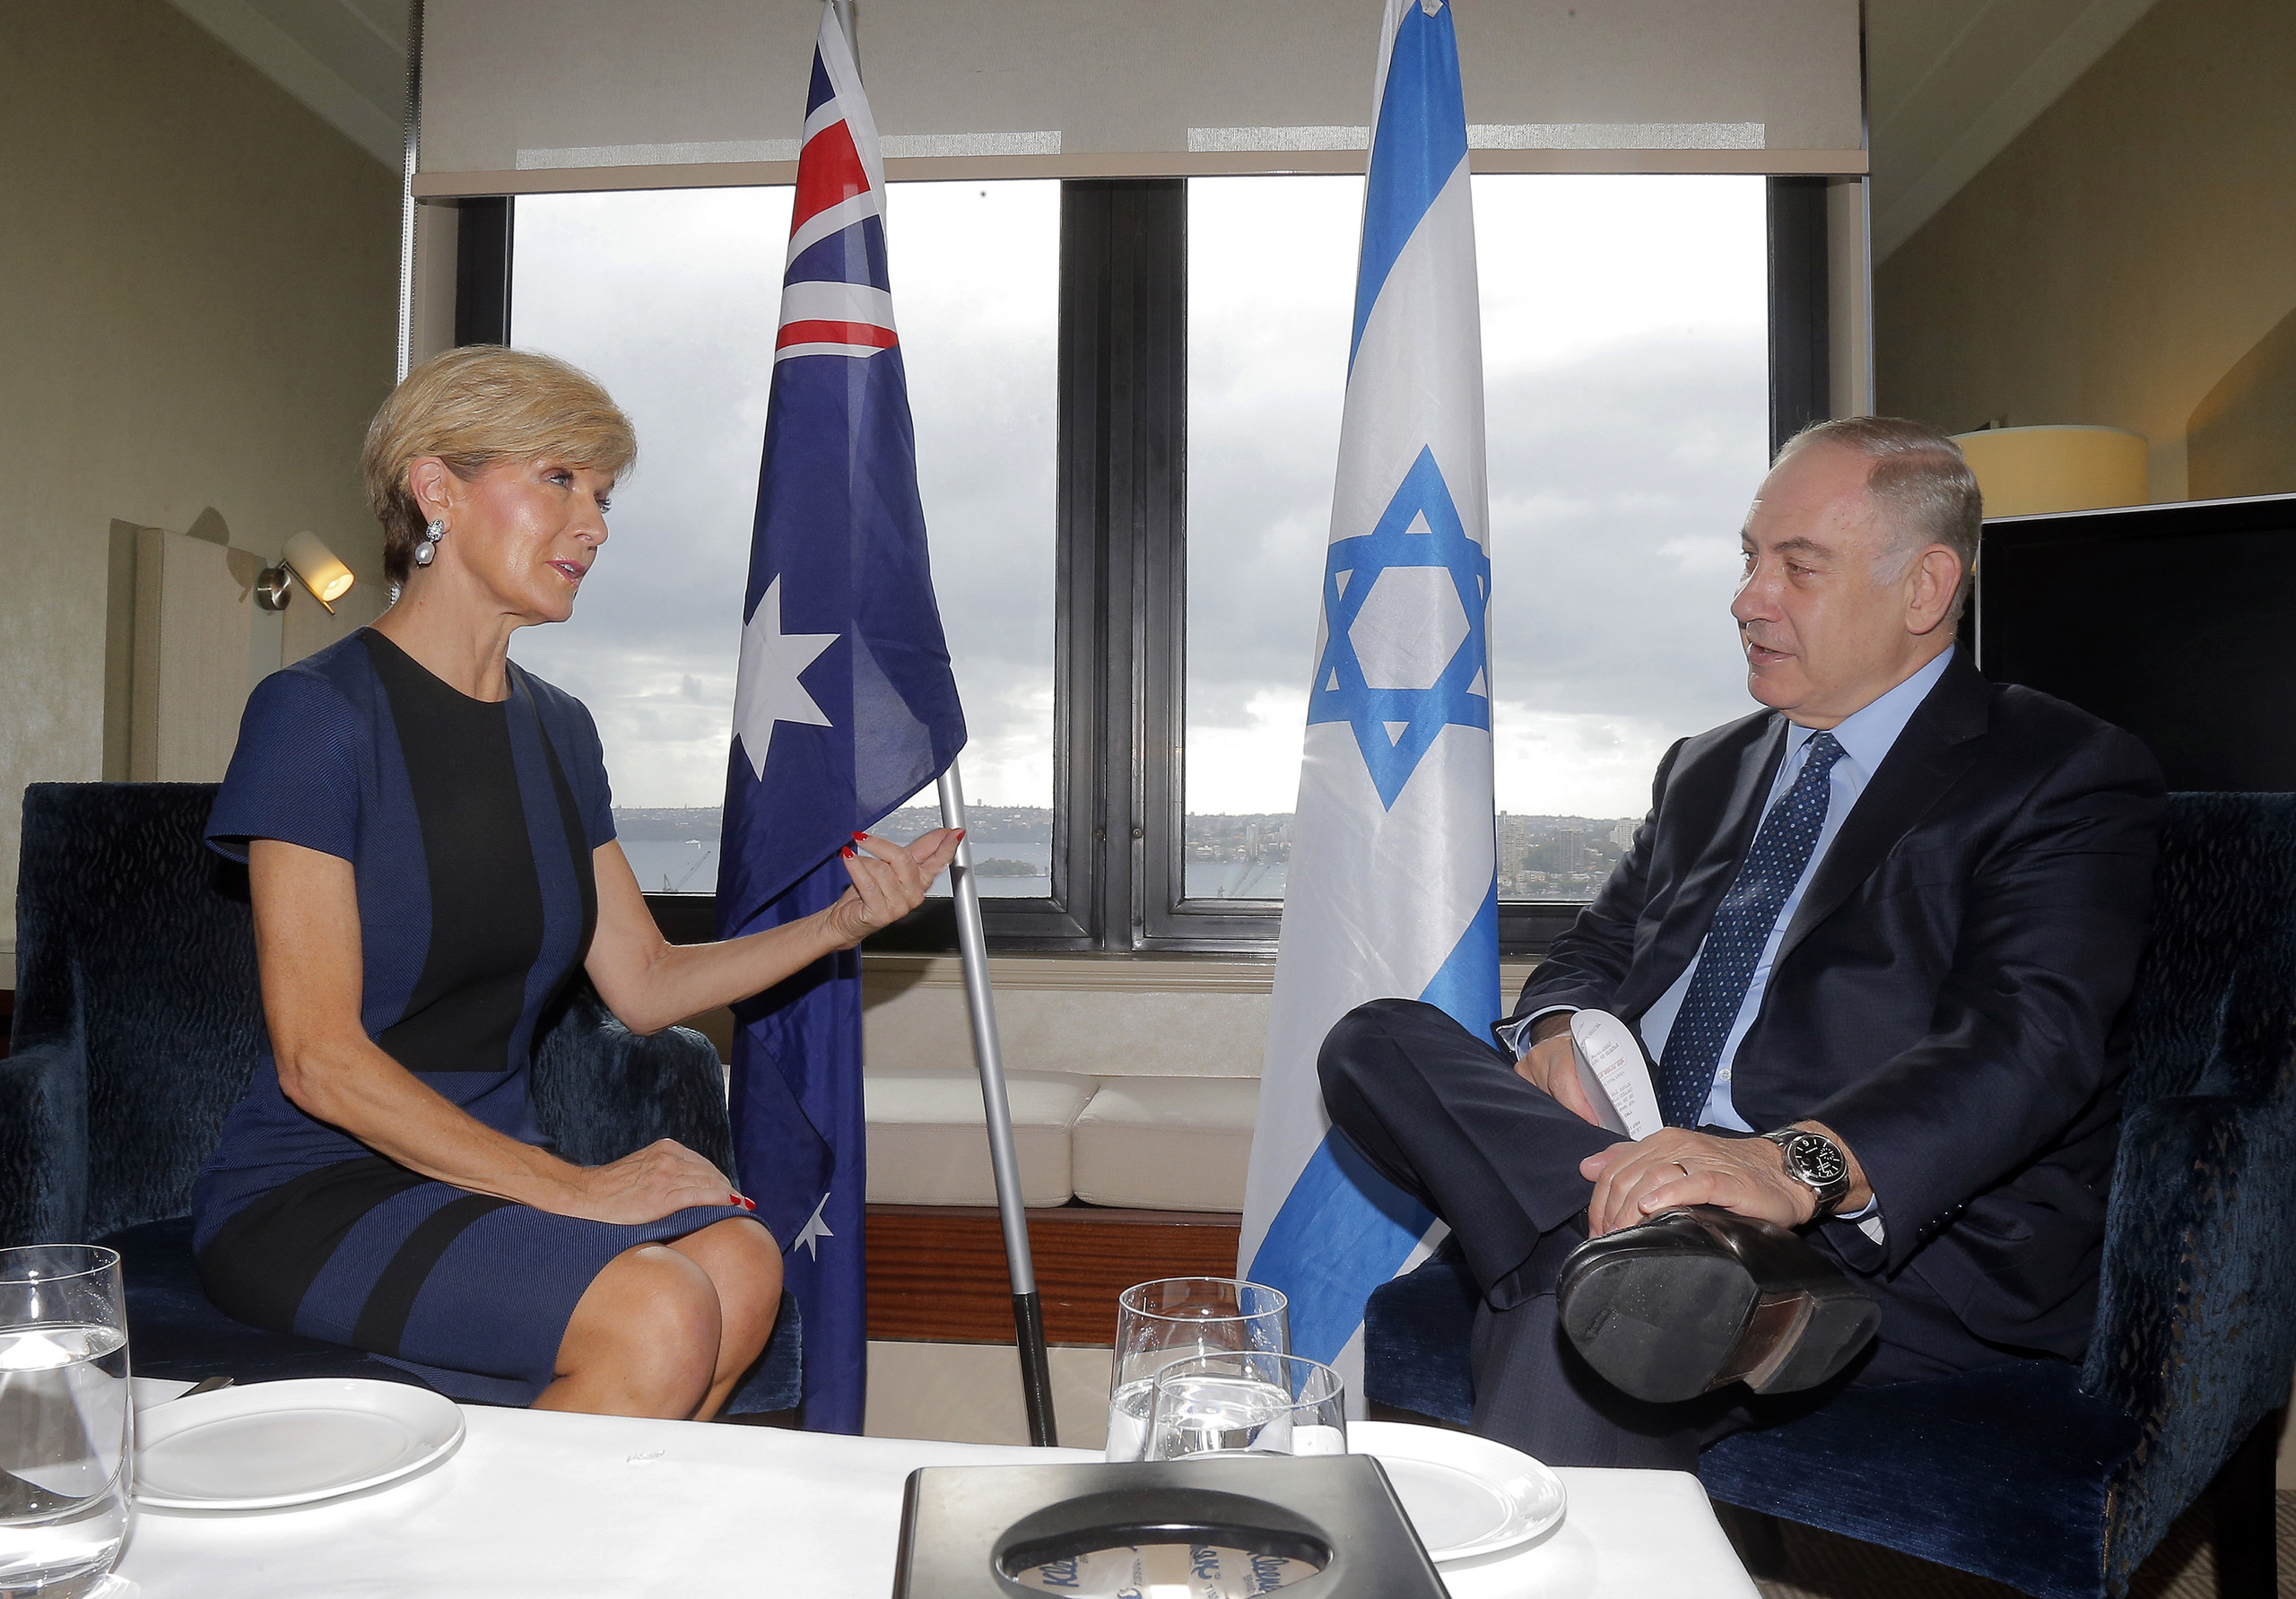 Australia's Foreign Minister Julie Bishop (L) meets with Israeli Prime Minister Benjamin Netanyahu in Sydney on February 26, 2017.  Netanyahu is leaving today after a four-day official visit to Australia during which he discussed bilateral and international issues with his counterpart Malcolm Turnbull and other high officials. / AFP PHOTO / POOL / JASON REED